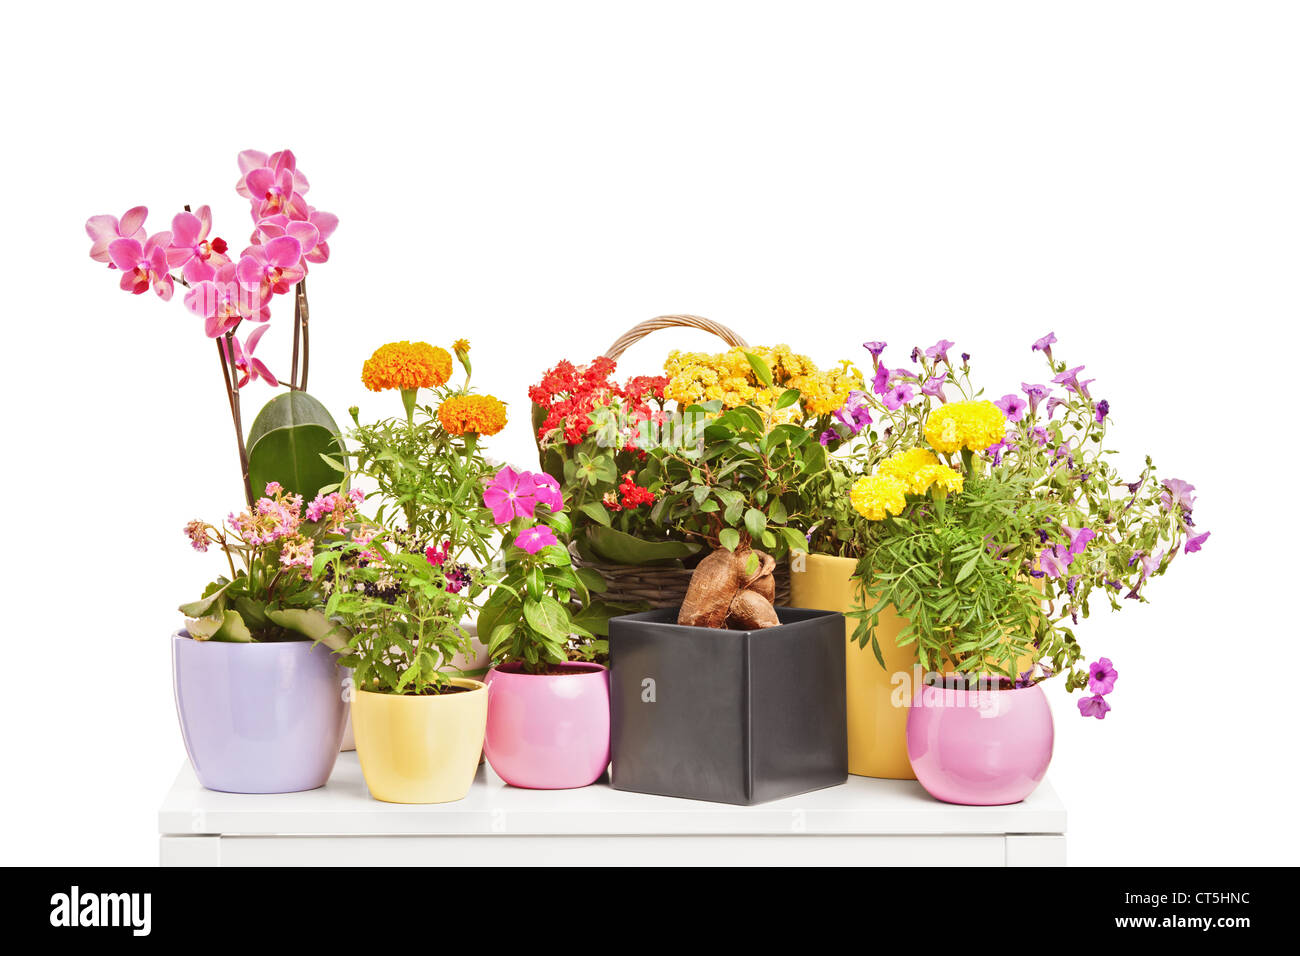 Types Of Flowers Stock Photos Types Of Flowers Stock Images Alamy